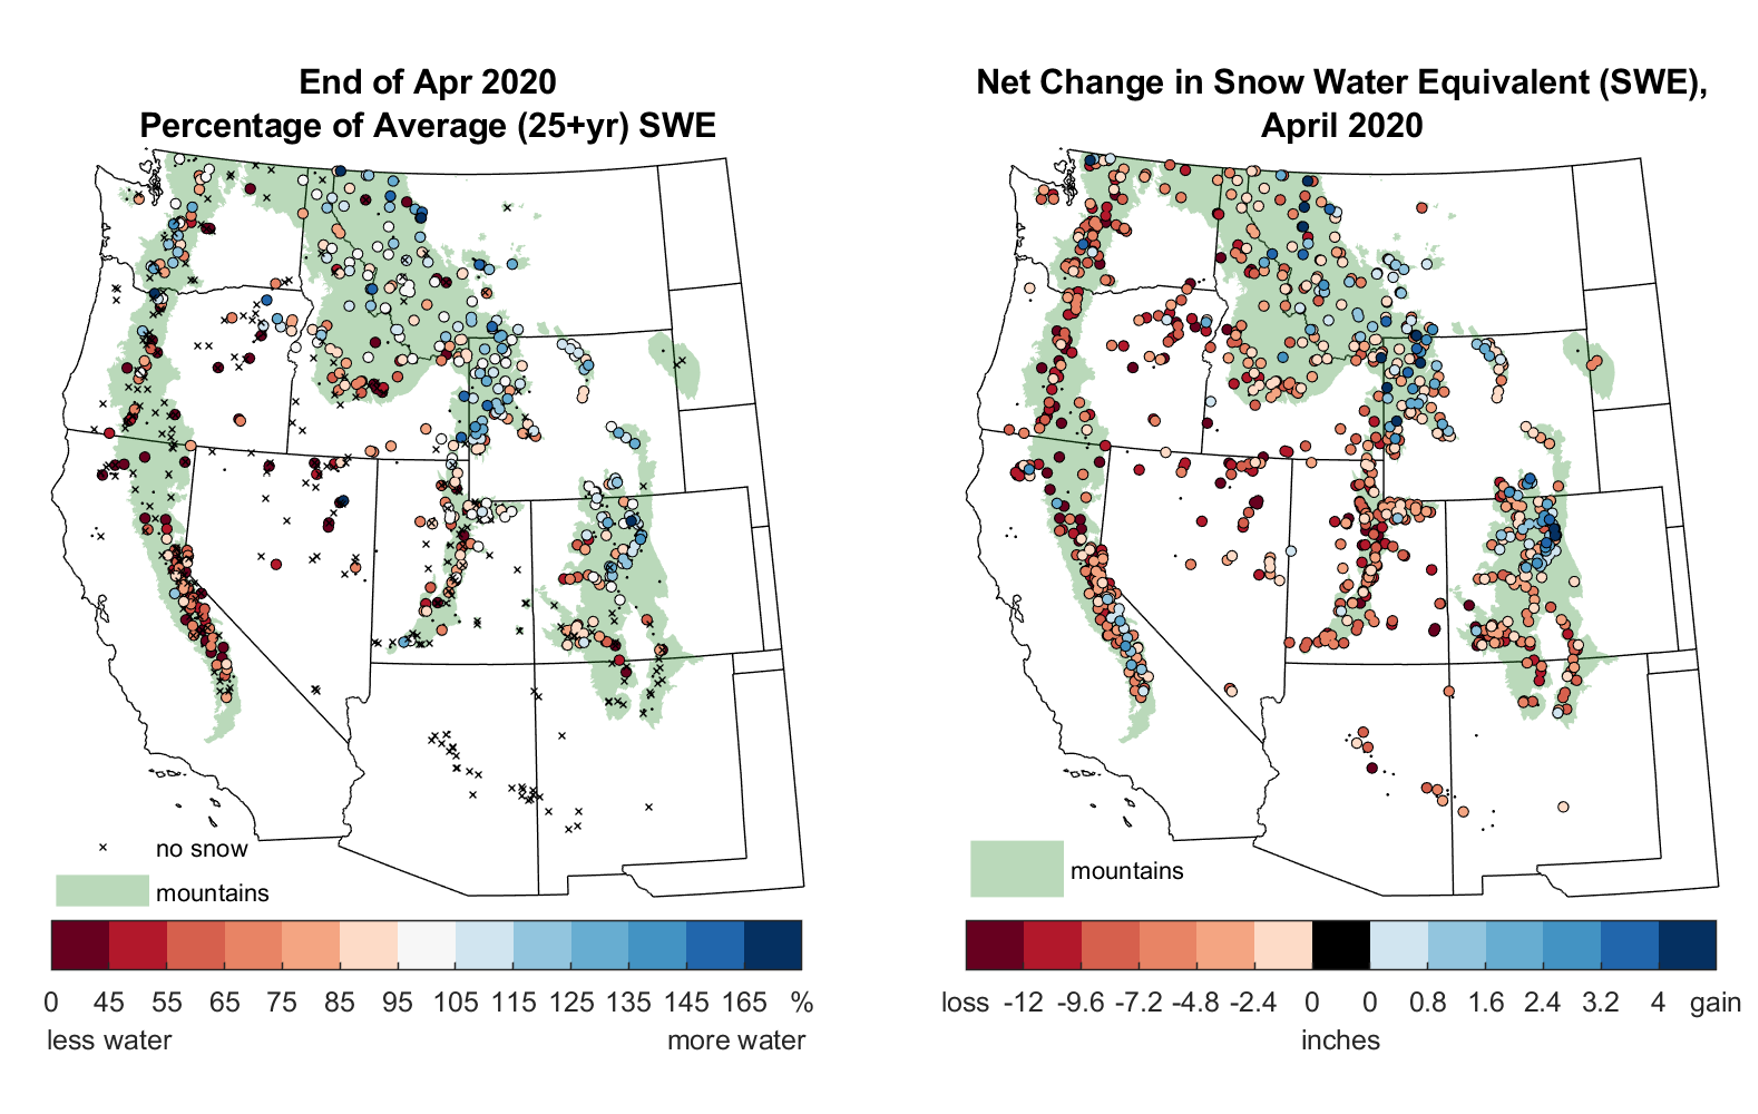 Snow water equivalent (SWE) at monitoring sites in Western United States